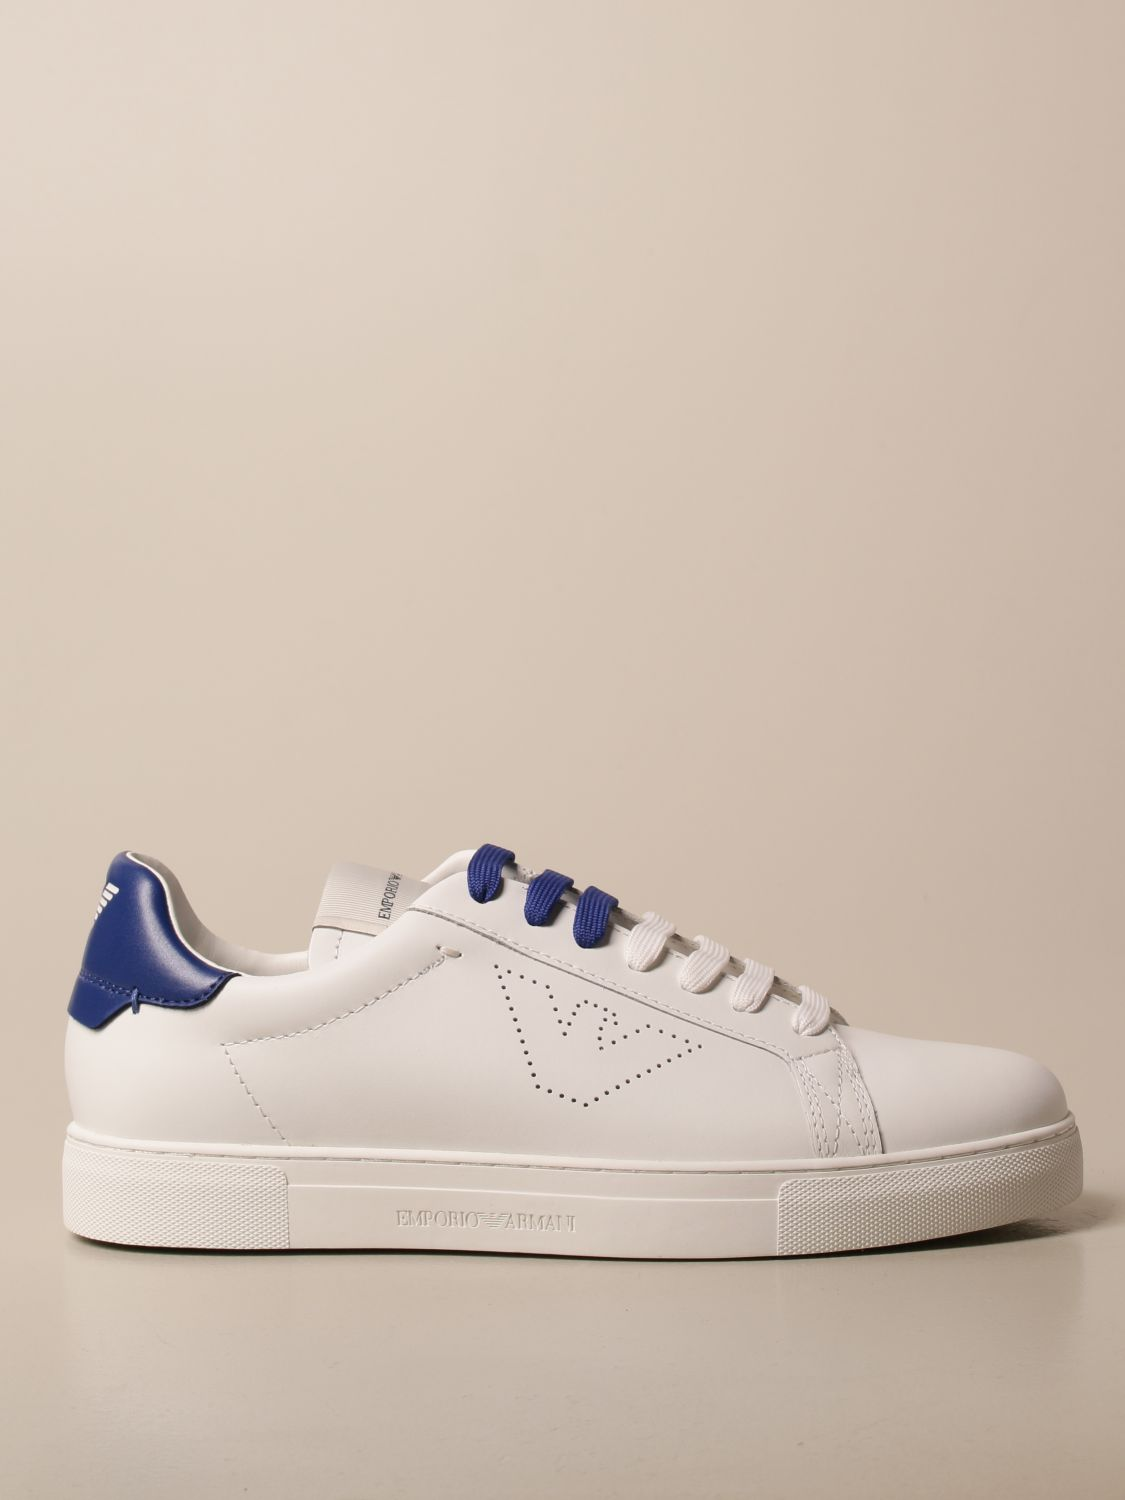 Sneakers Emporio Armani: Emporio Armani sneakers in leather white 2 1